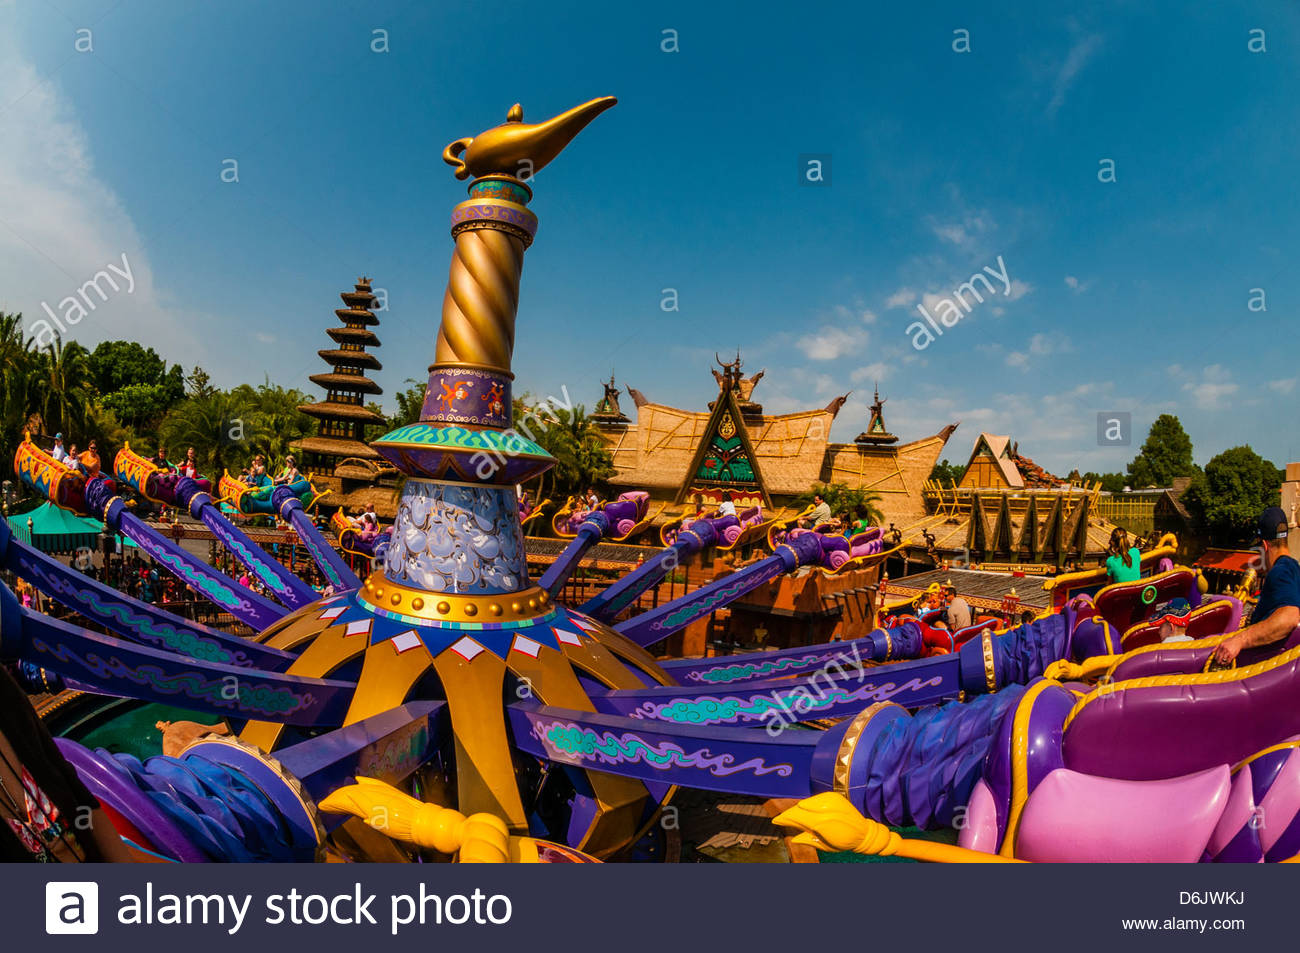 The Magic Carpets Of Aladdin You Carpet Vidalondon